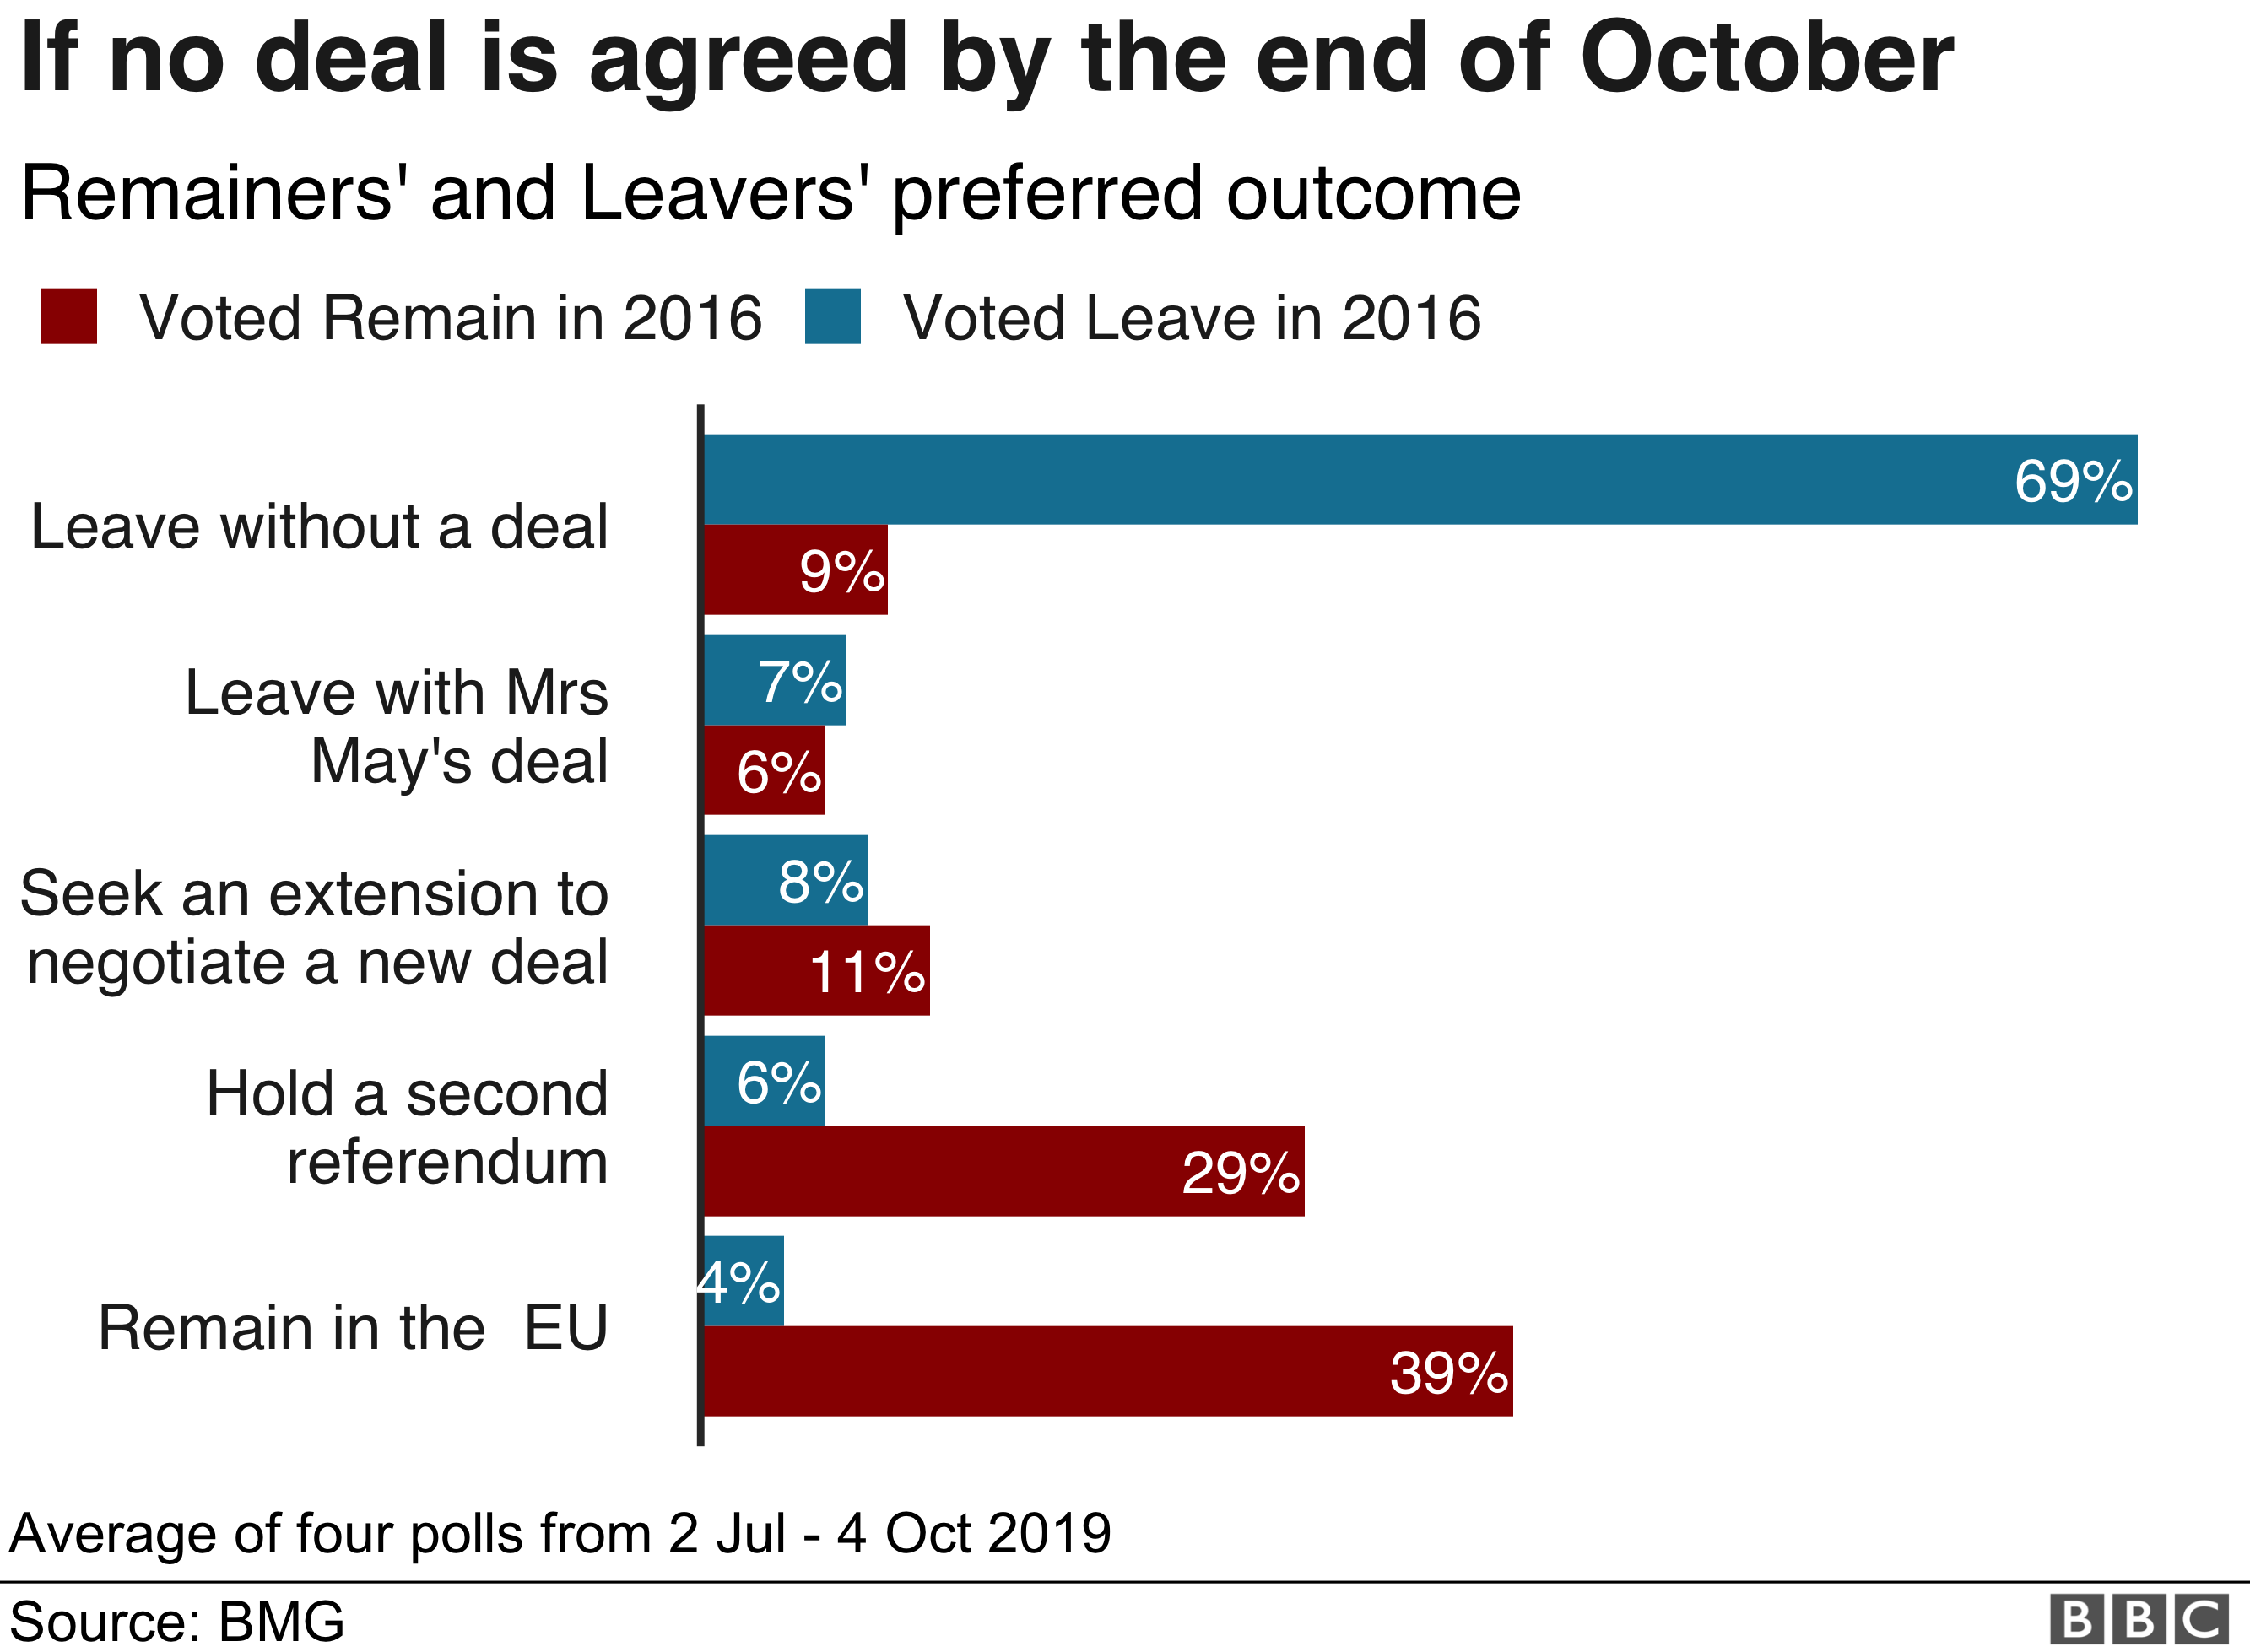 Preferred outcome in no deal reached by end of October